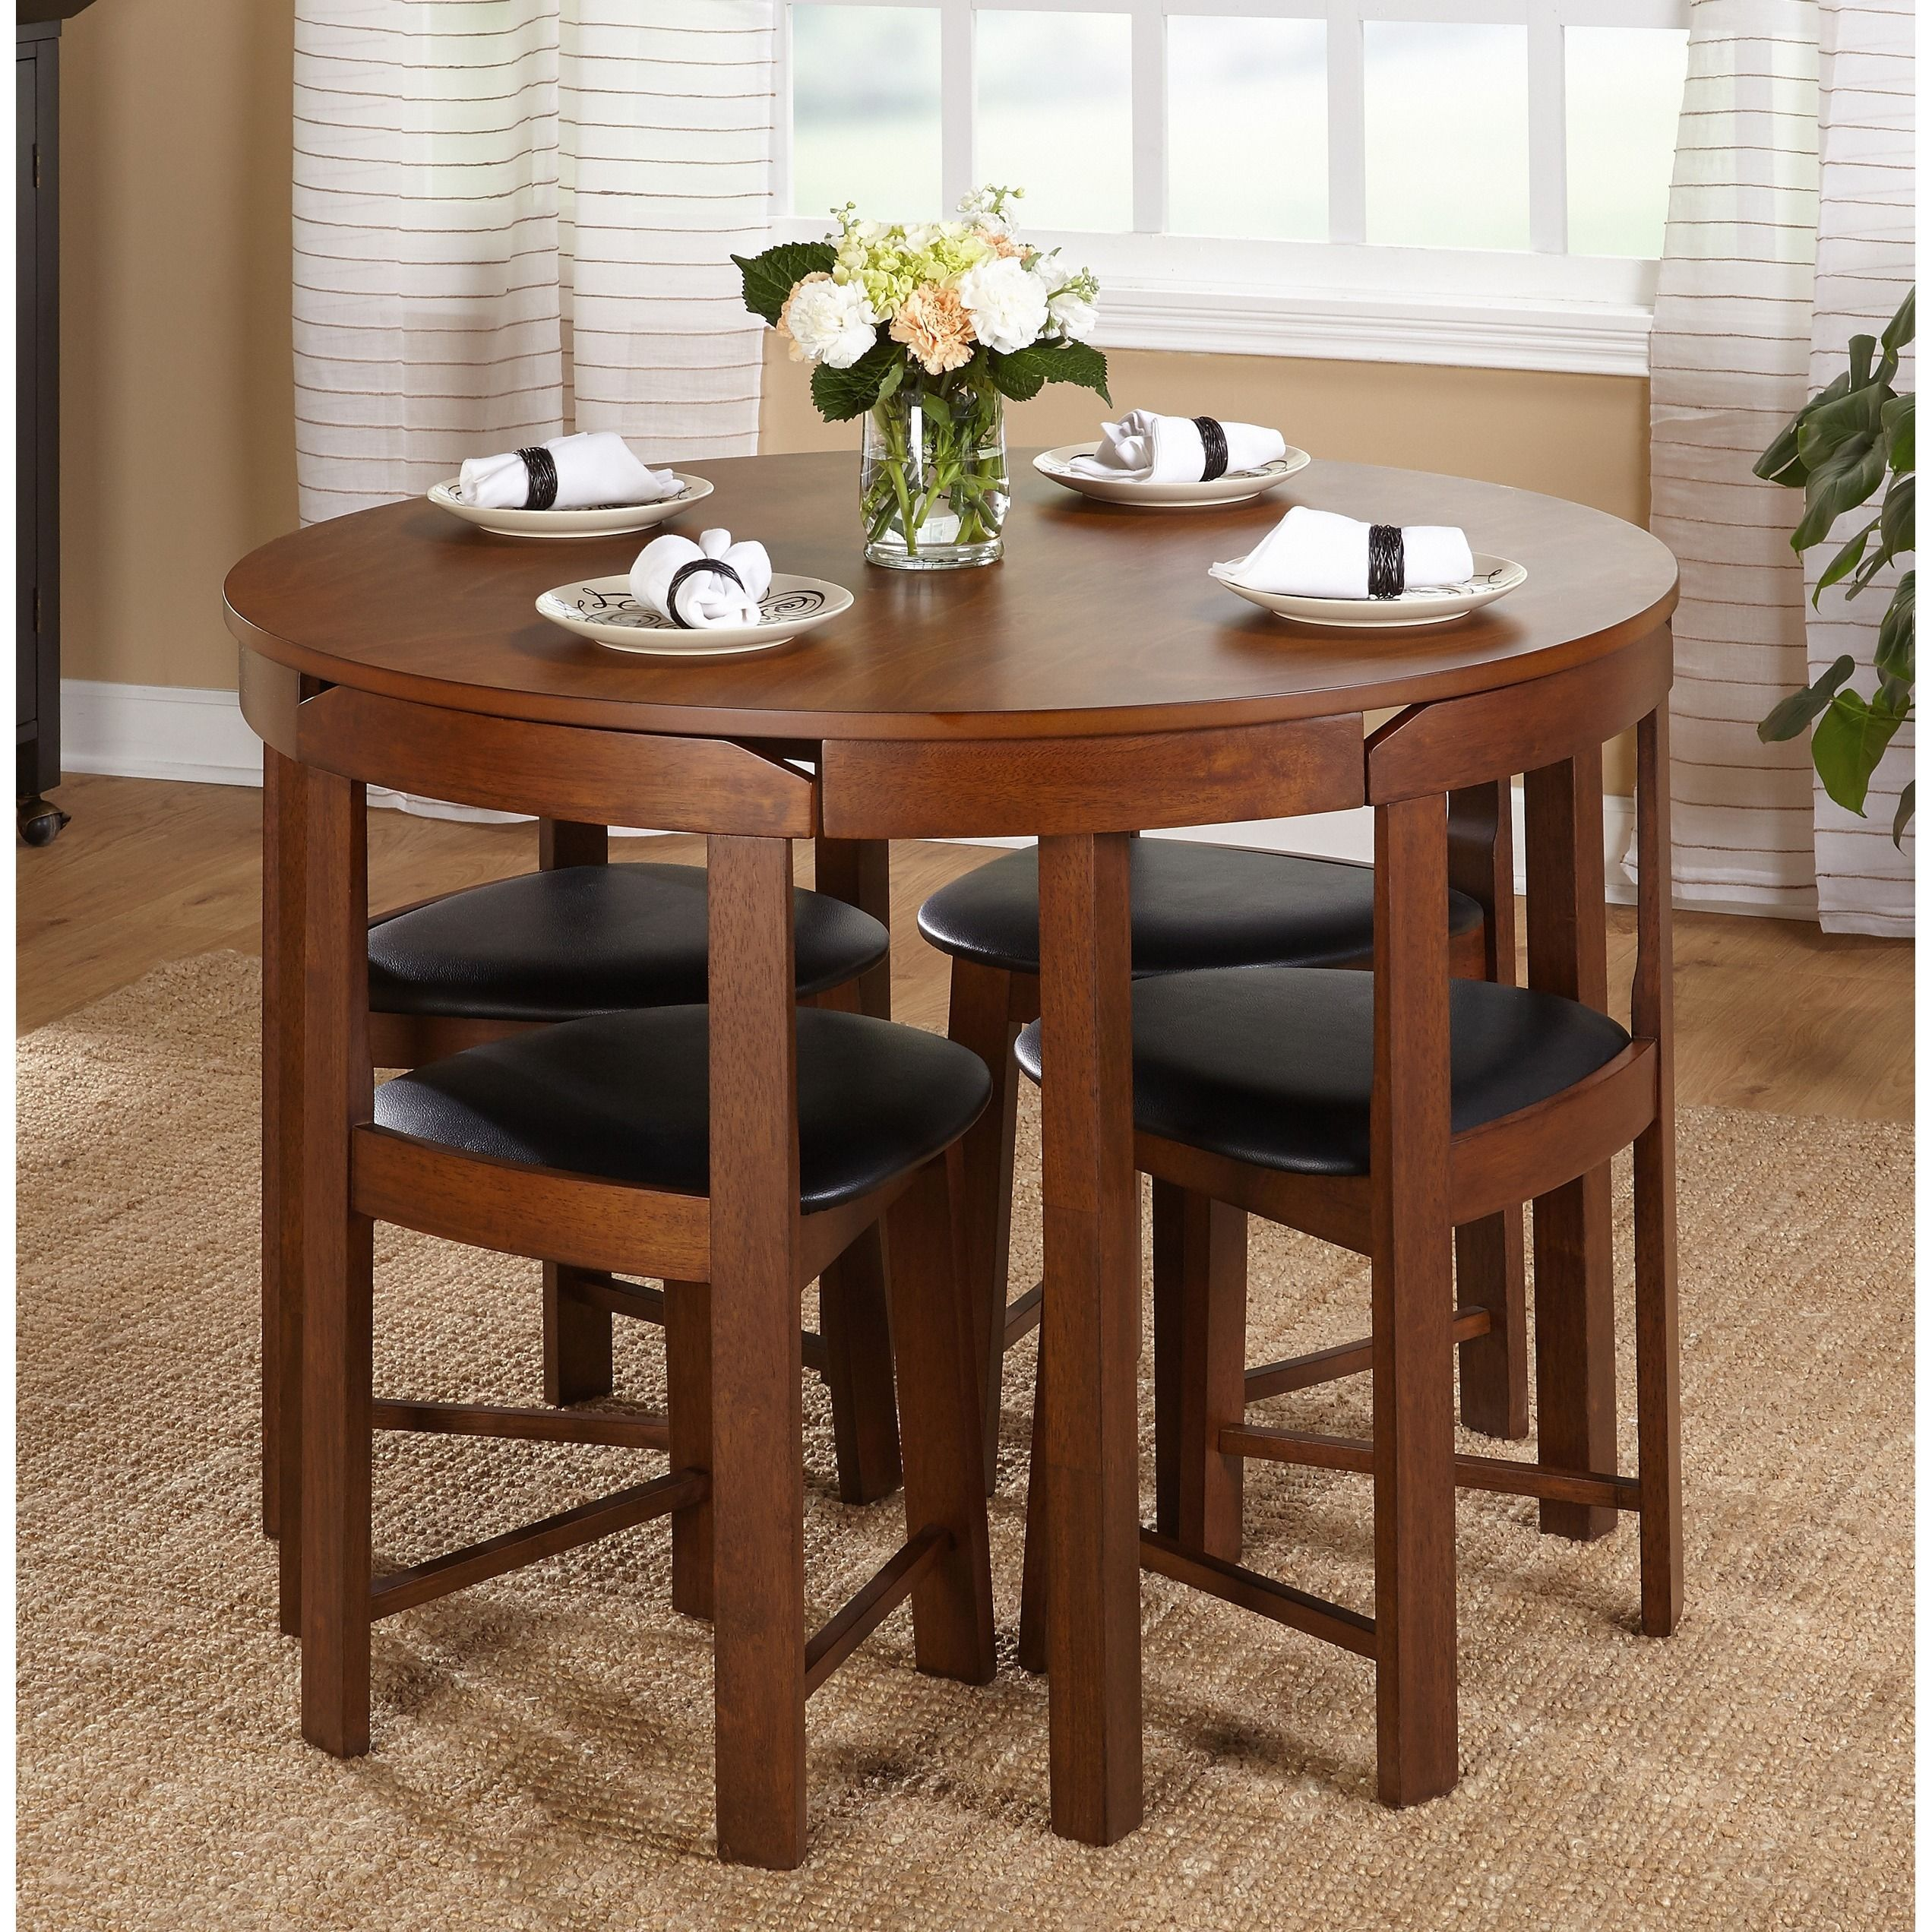 tables for small kitchens Simple Living 5 piece Tobey Walnut Compact Dining Set by Simple Living